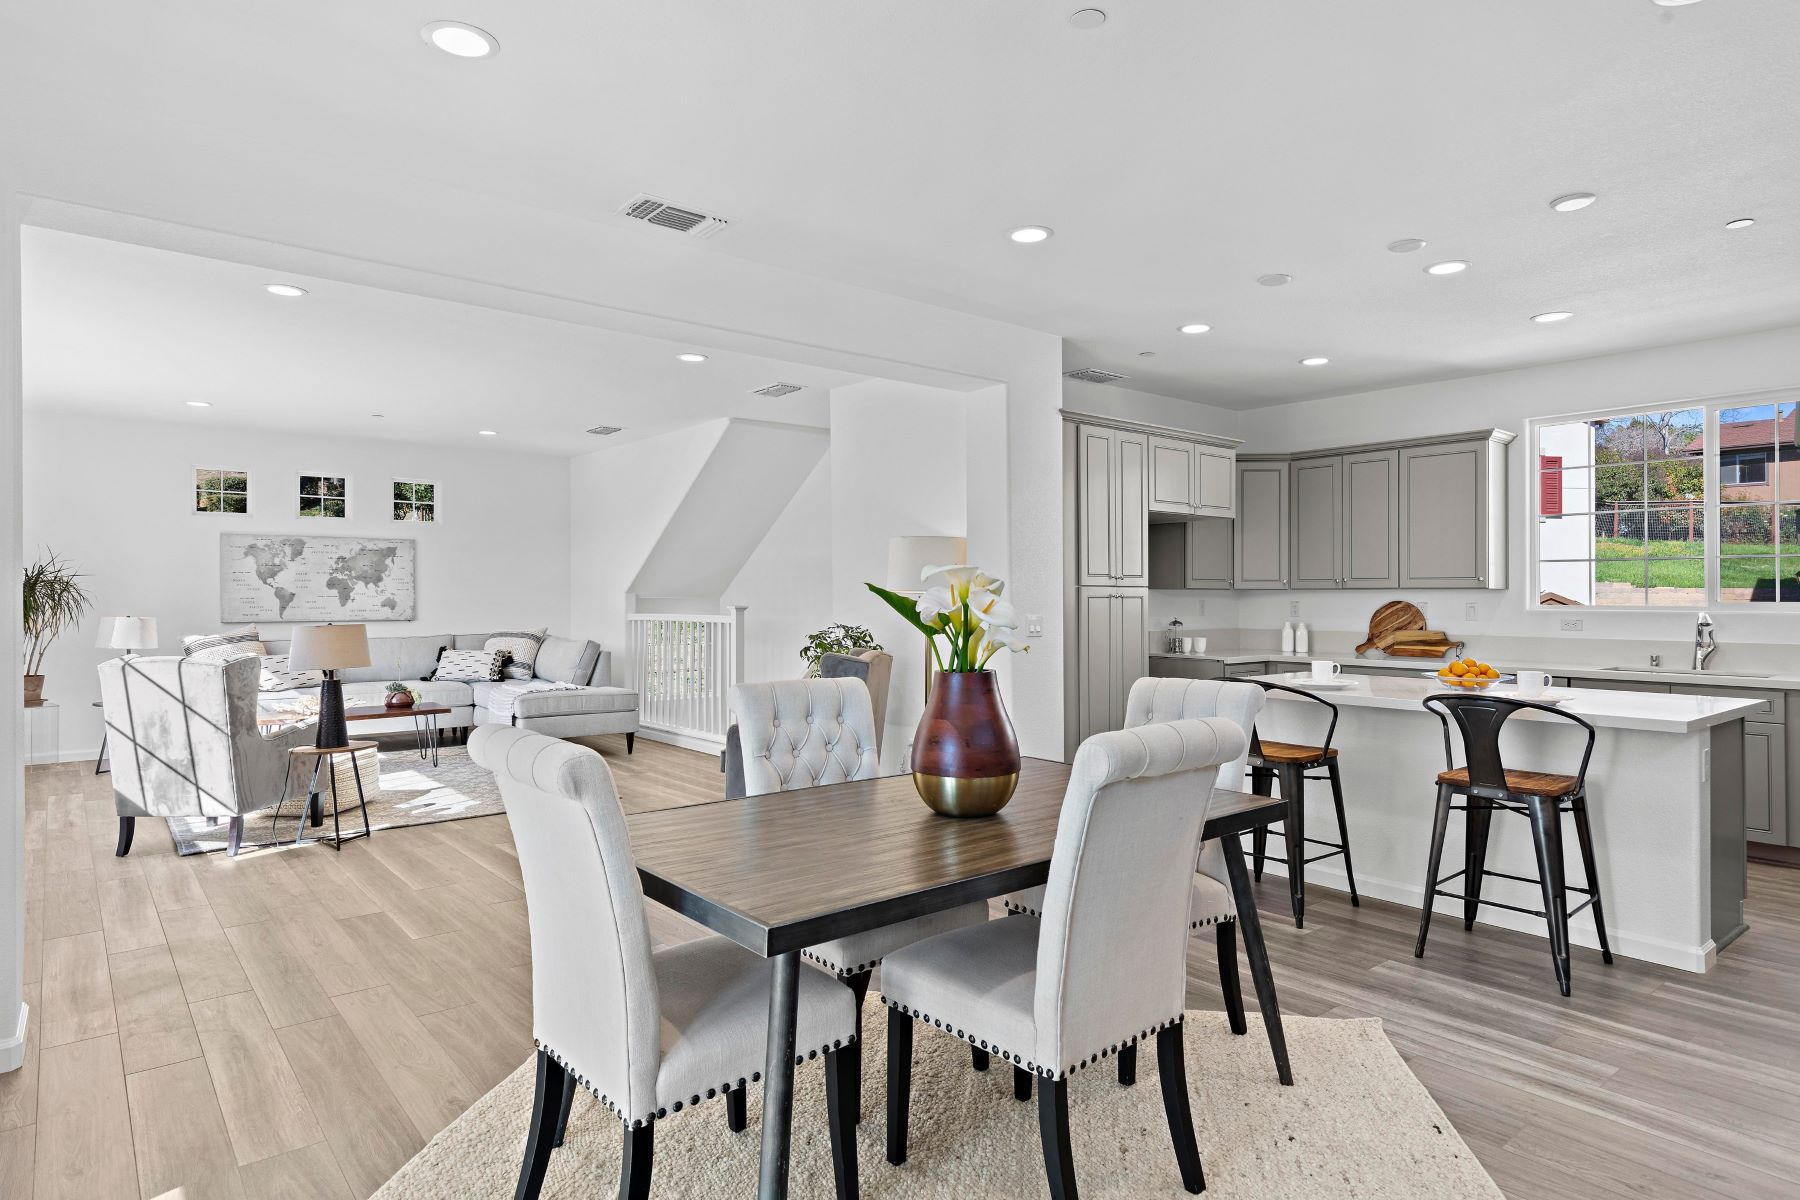 Single Family Homes for Active at Custom Home In Brand New Community 454 Colina Way El Sobrante, California 94803 United States